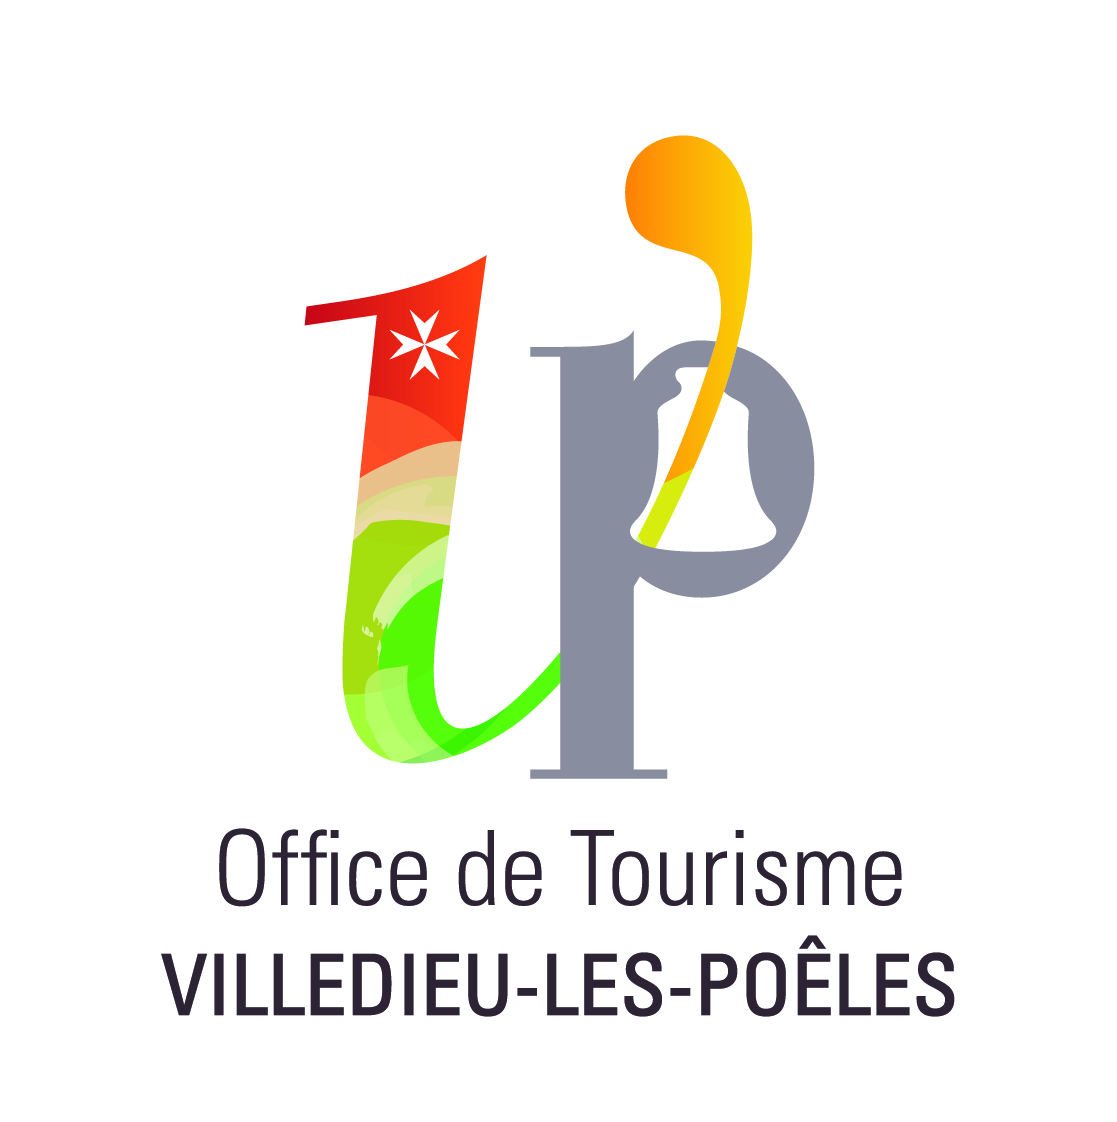 Office du tourisme de villedieu les po les zoo champrepus - Thollon les memises office du tourisme ...